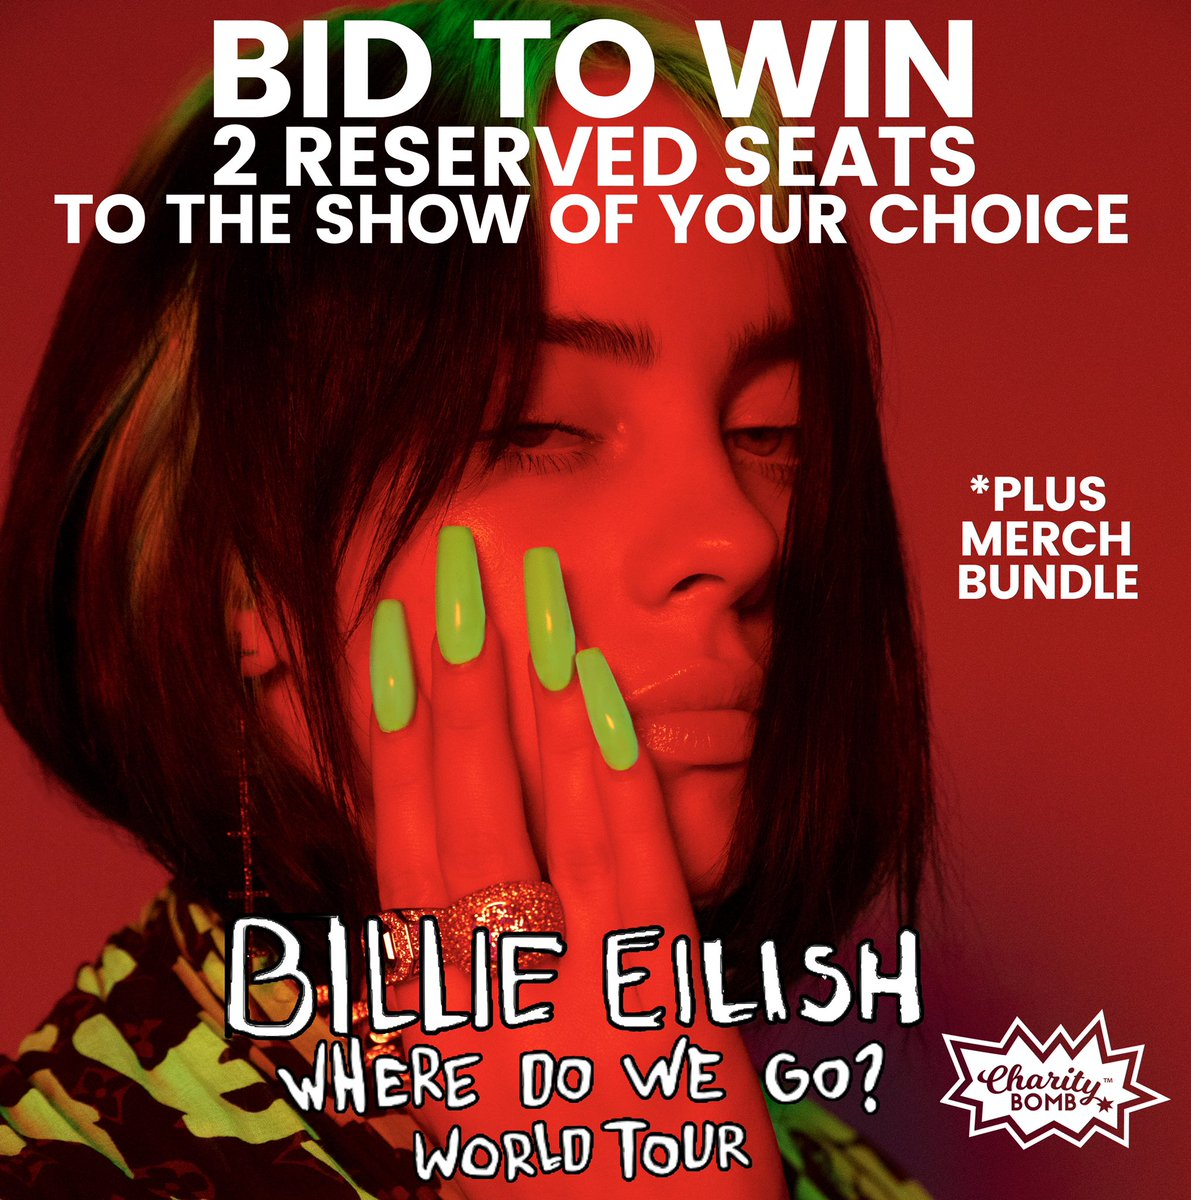 You can support the #GENzEQ initiative! Bid to WIN 2 Reserved Seats to see  @billieeilish  on her WHERE DO WE GO? WORLD TOUR plus a merch bundle! Feed your 'strange addiction' and BID NOW! http://bit.ly/WhereDoWeTour#BillieEilish #wheredowegoworldtour